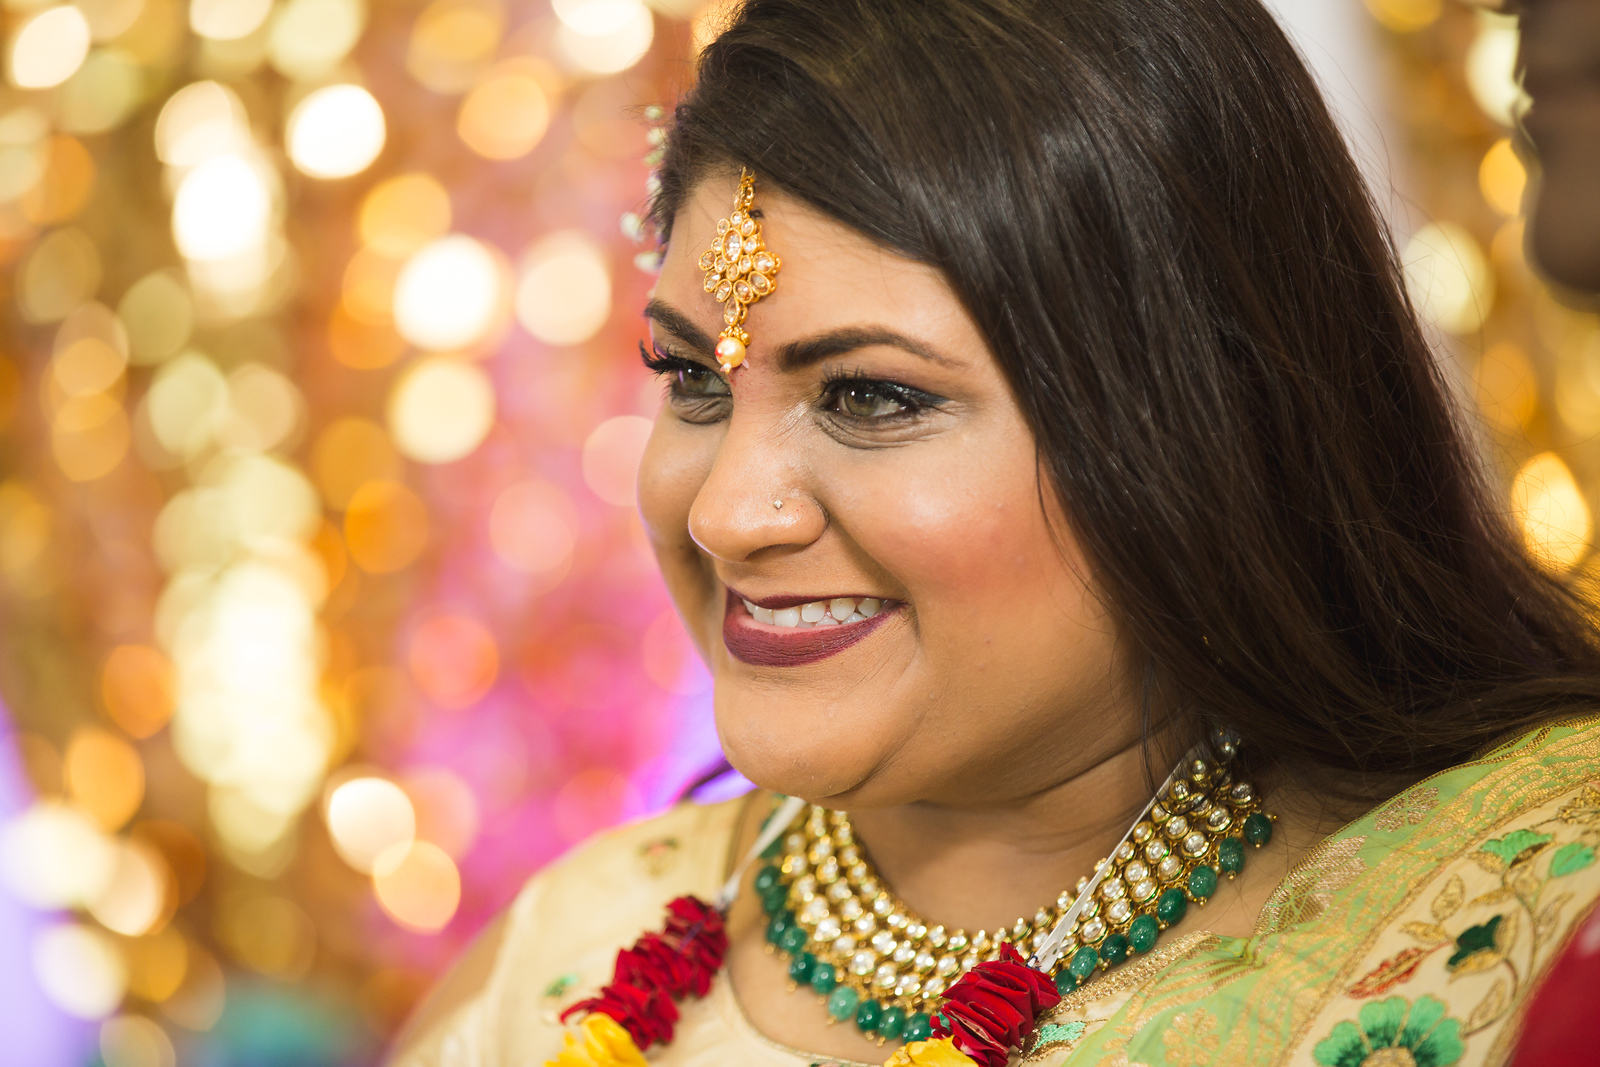 Hindu bride at her 3 day wedding celebration in Oklahoma